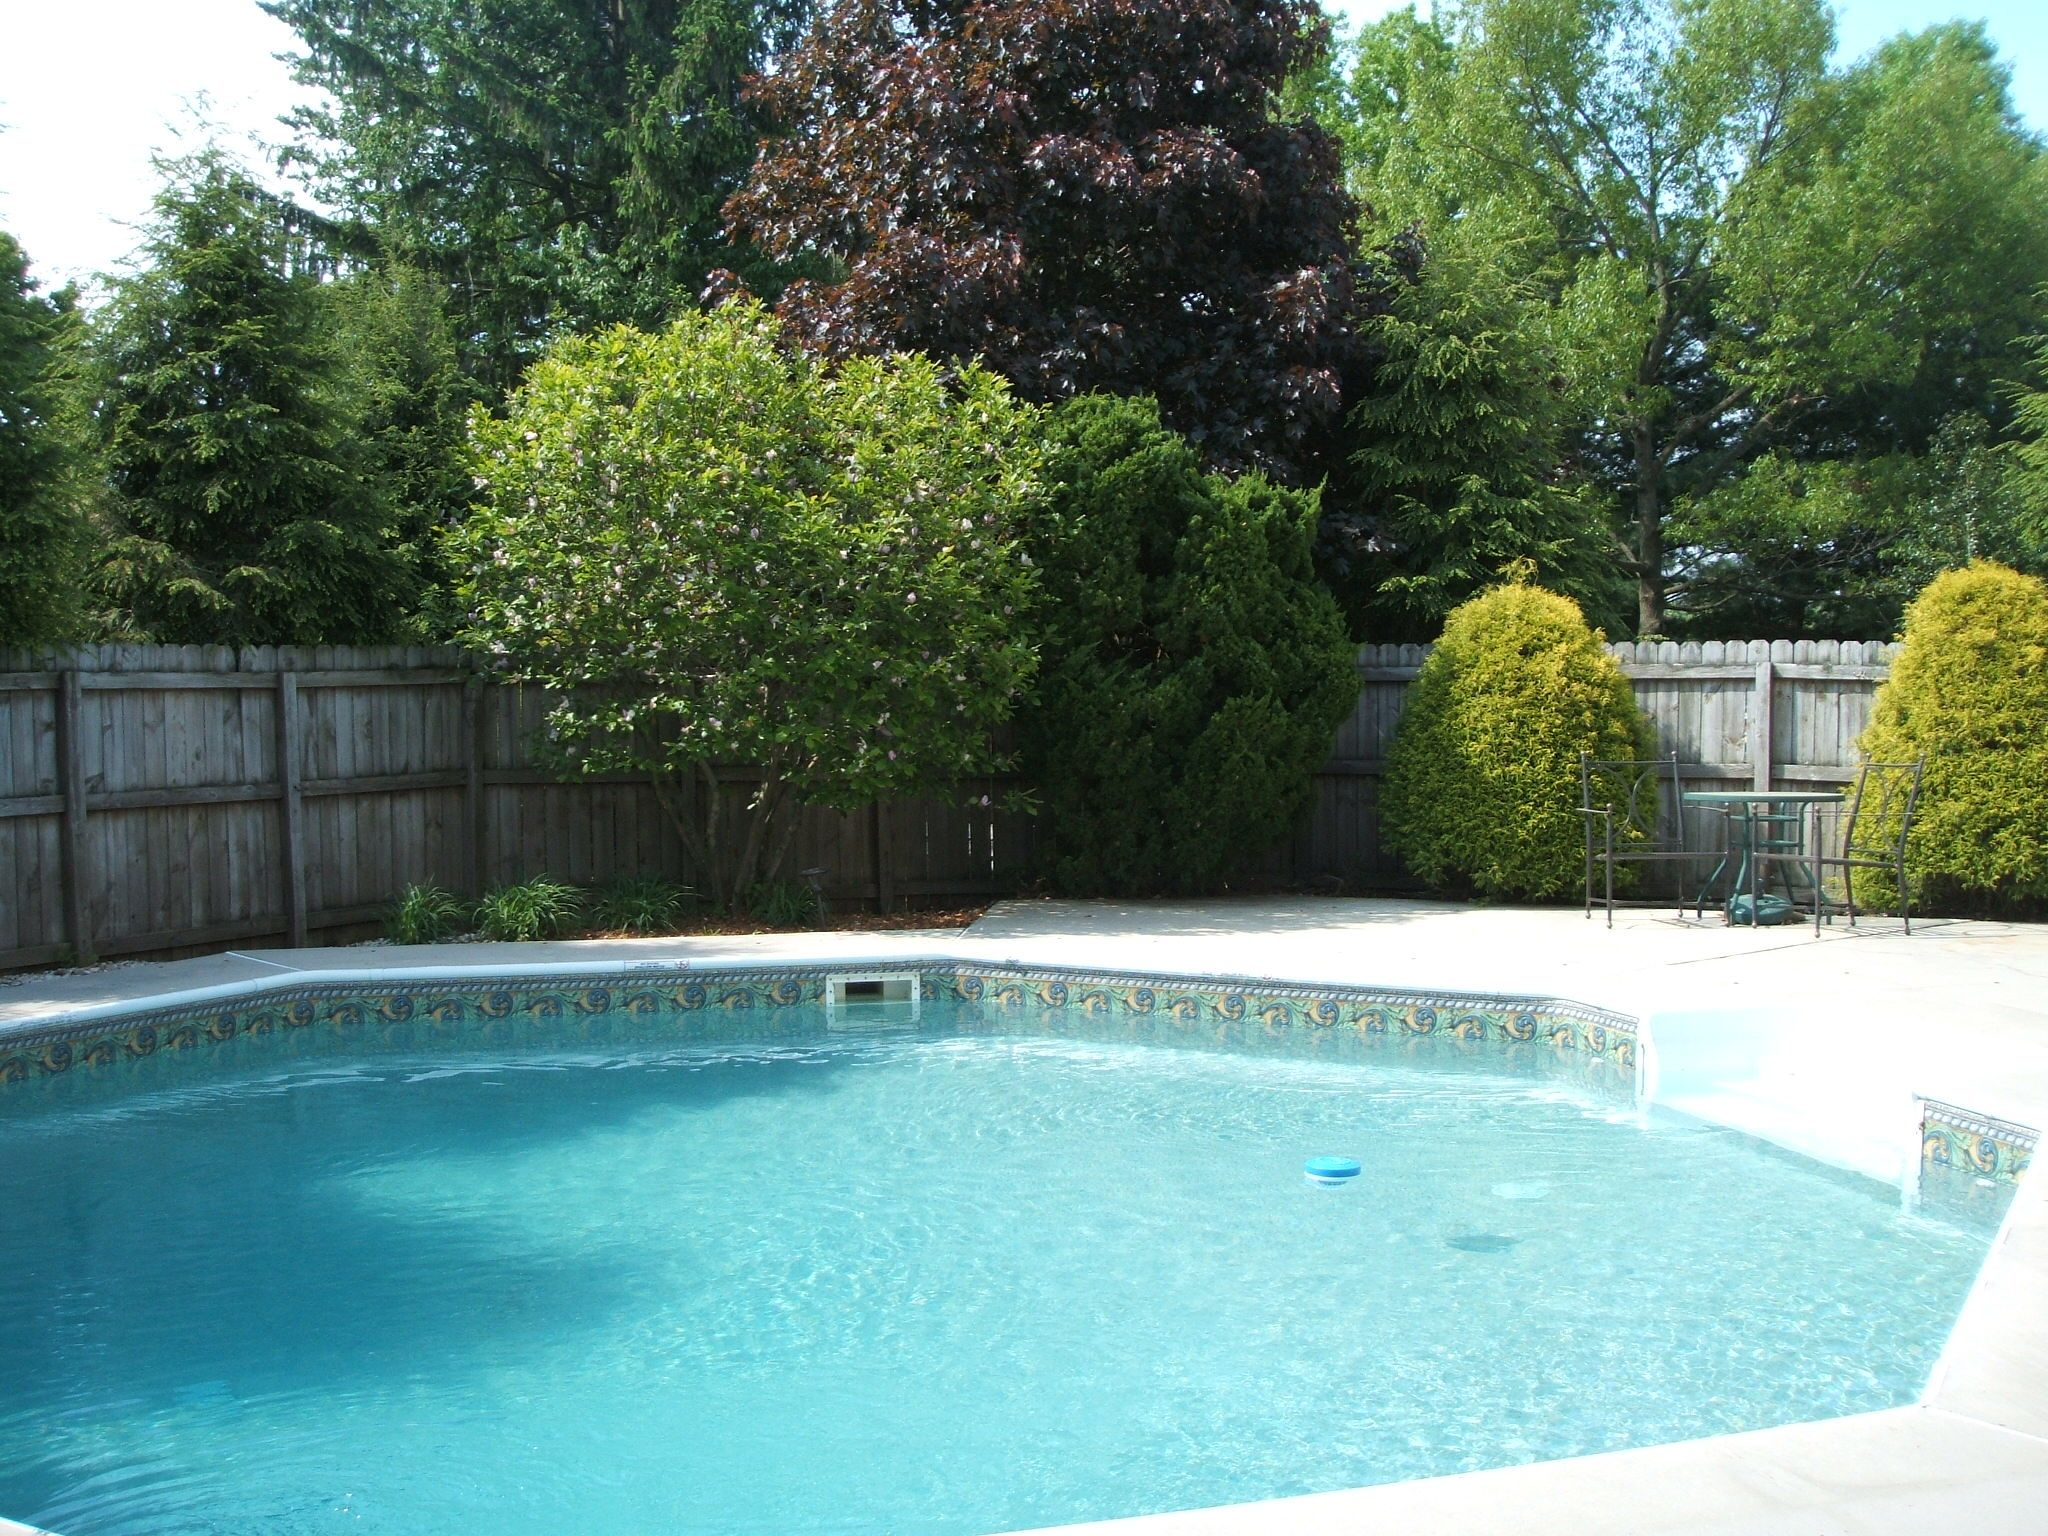 French doors in LR open to this sparkling inground pool. This home is located in Lebanon PA and is available for purchase.